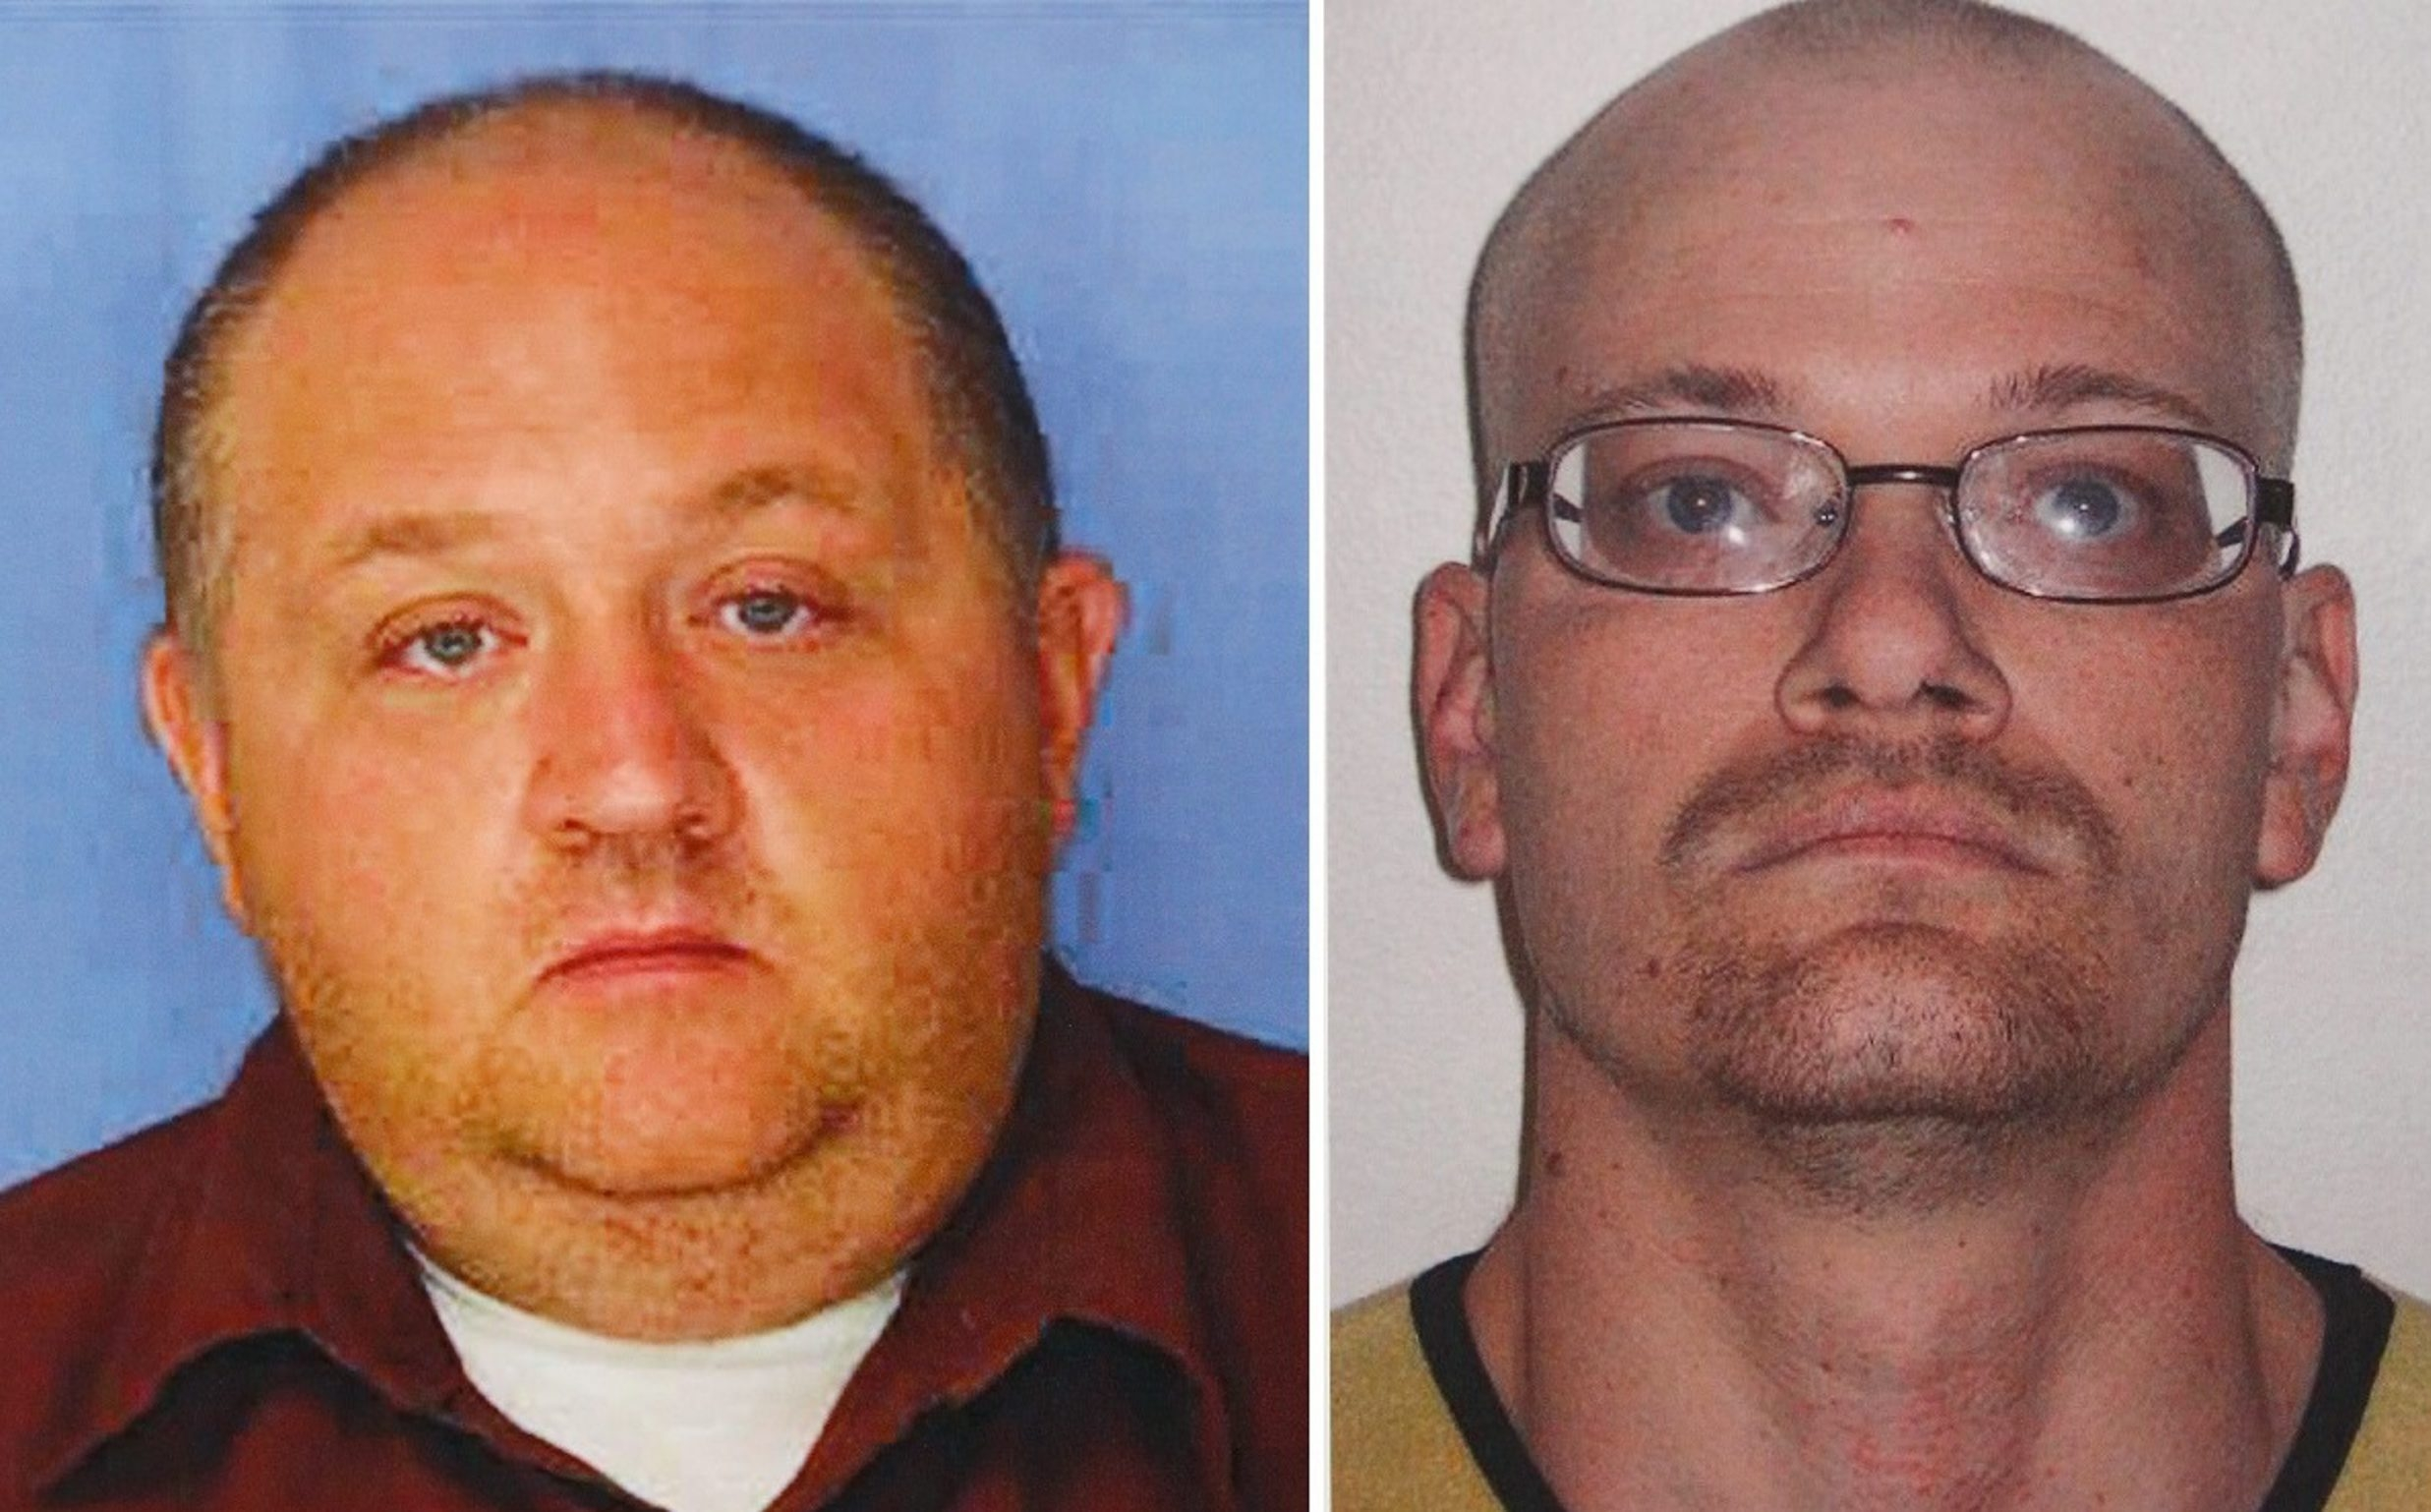 Jonathan Conklin, left, and Charles Sanford killed violinist Mary Whitaker in August 2014 in a failed burglary at her summer home.